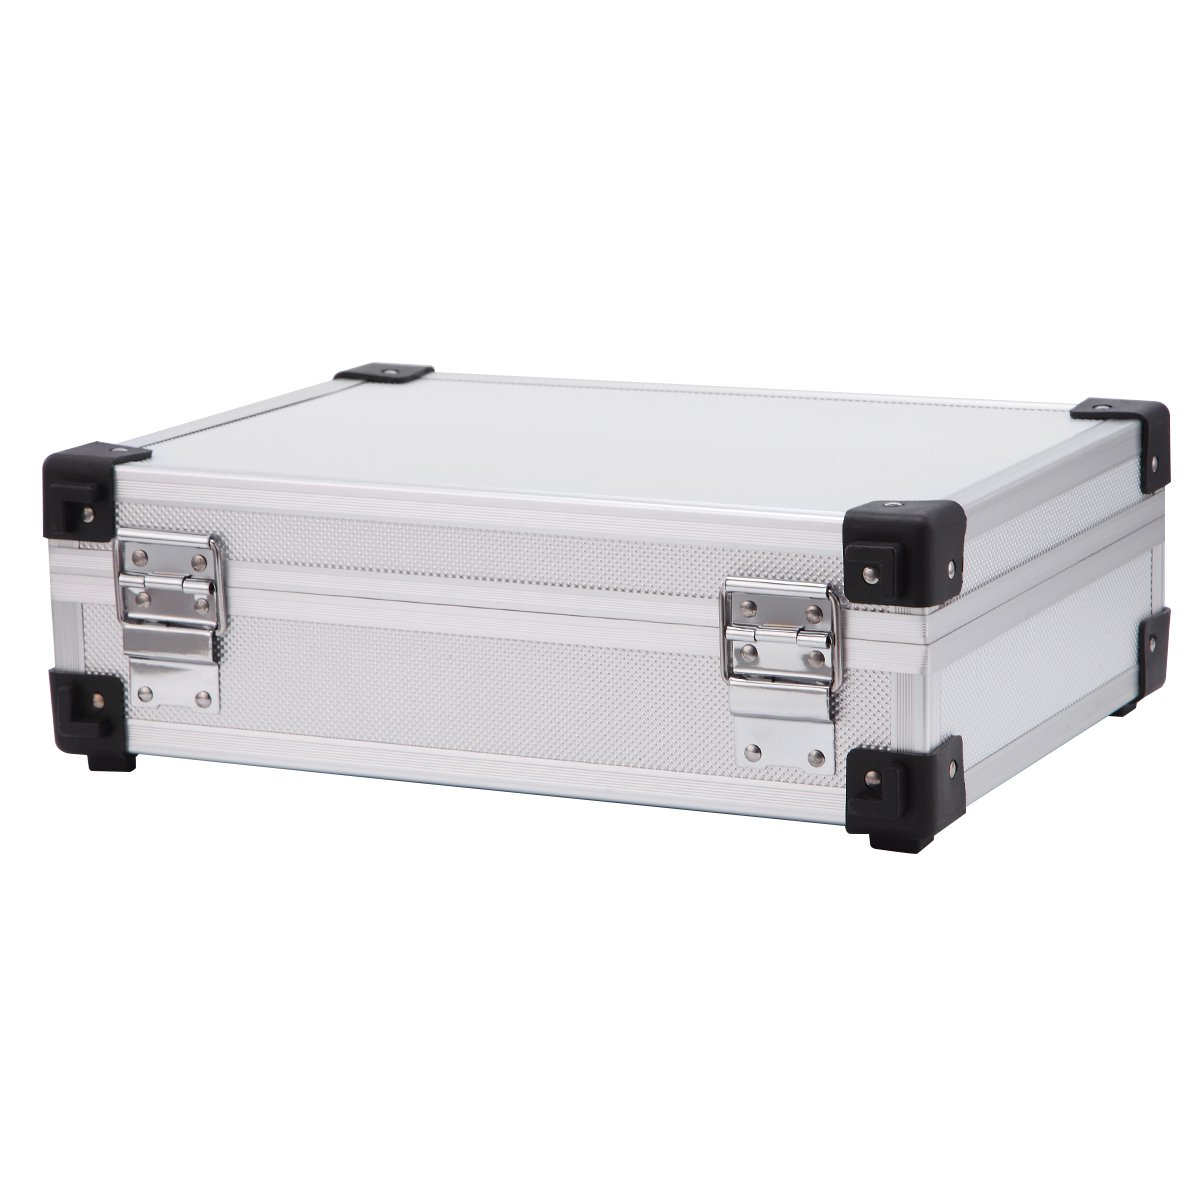 Professional Aluminum Hard Hand Gun Cases Office File Briefcase Outdoor Travel Flight Cases Home Tool Boxes with Quick Locks by ALUBOX (Image #6)